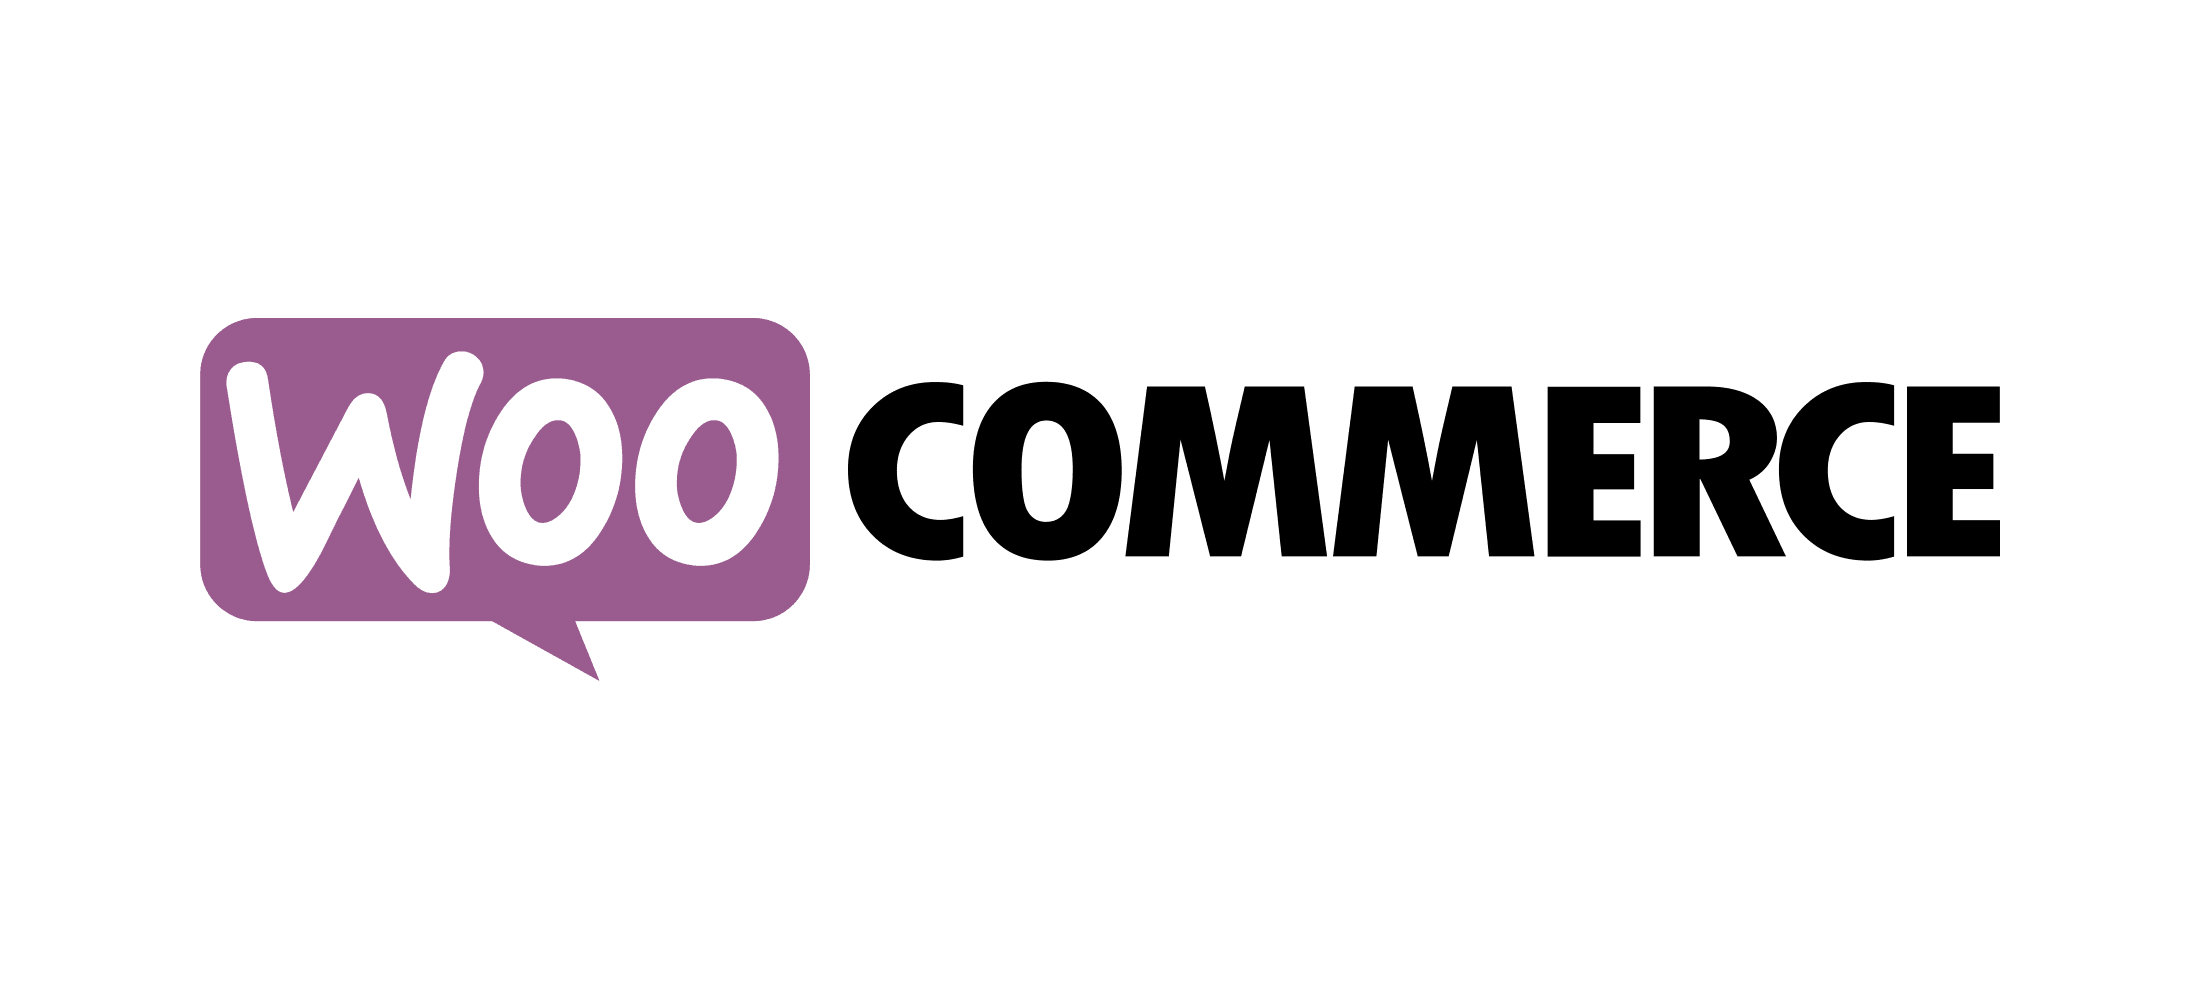 WooCommerce is literally taking over the Internet